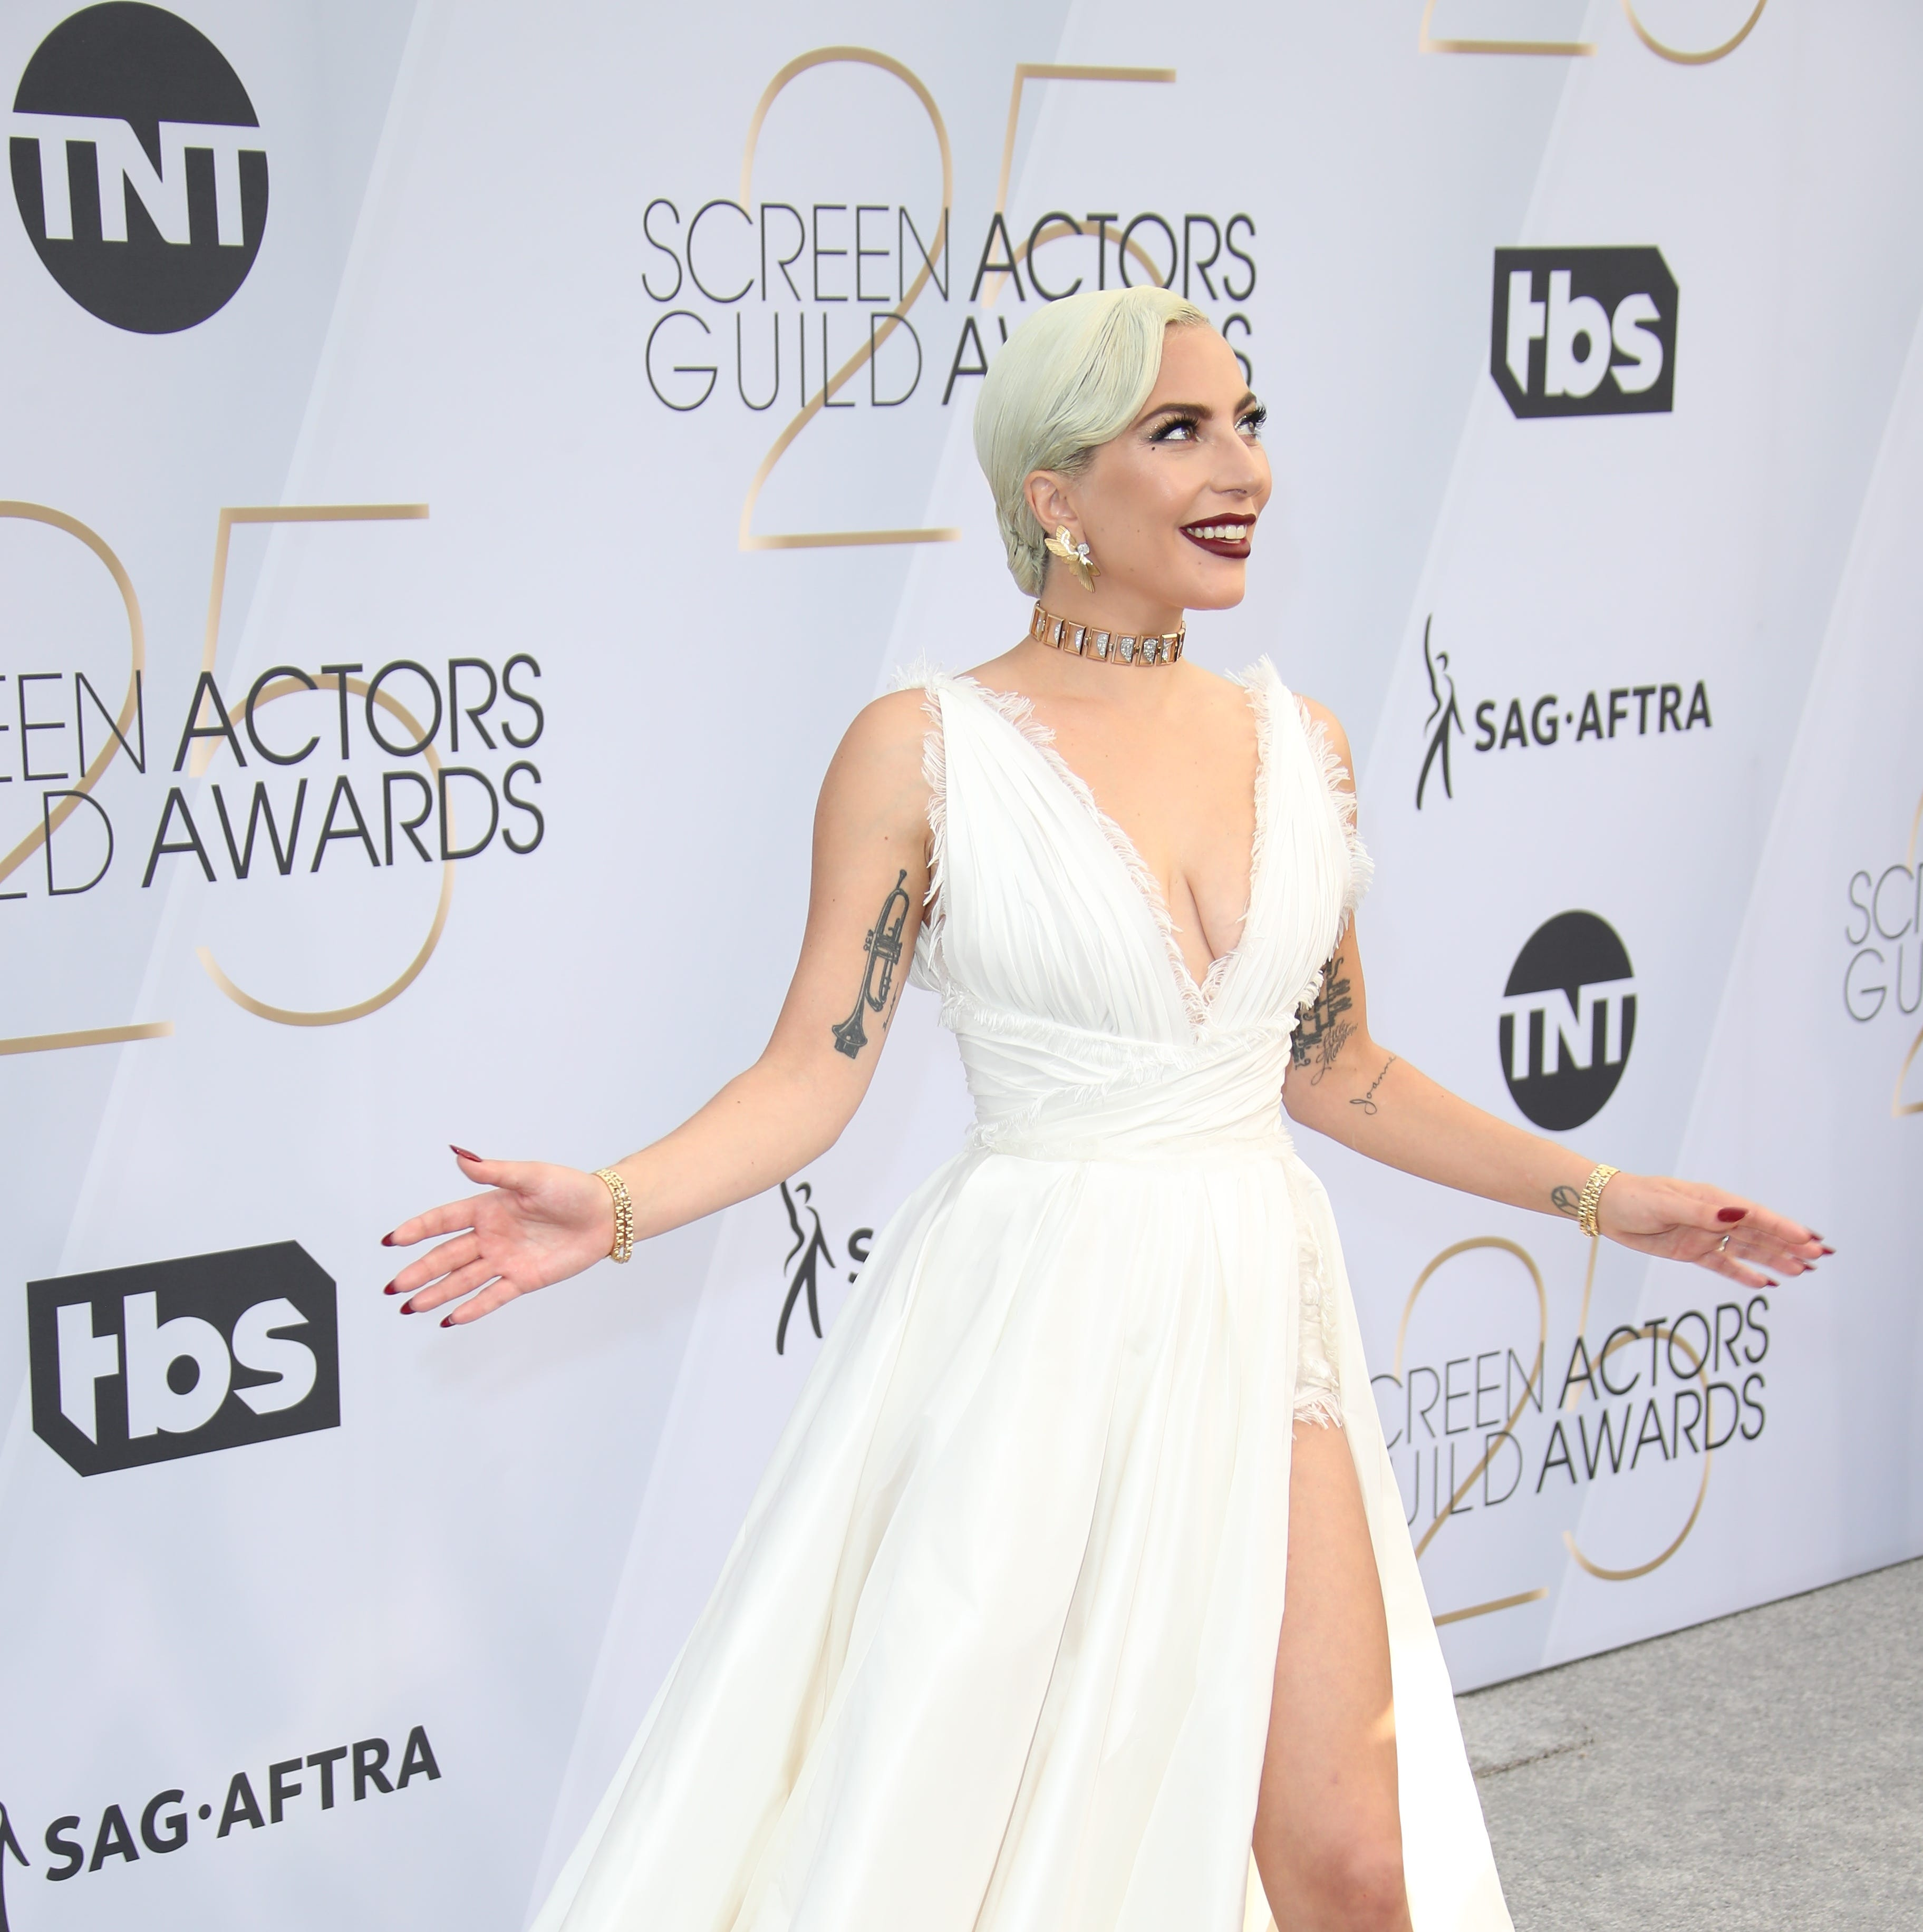 Lady Gaga arrives at the 25th Annual Screen Actors Guild Awards at the Shrine Auditorium.